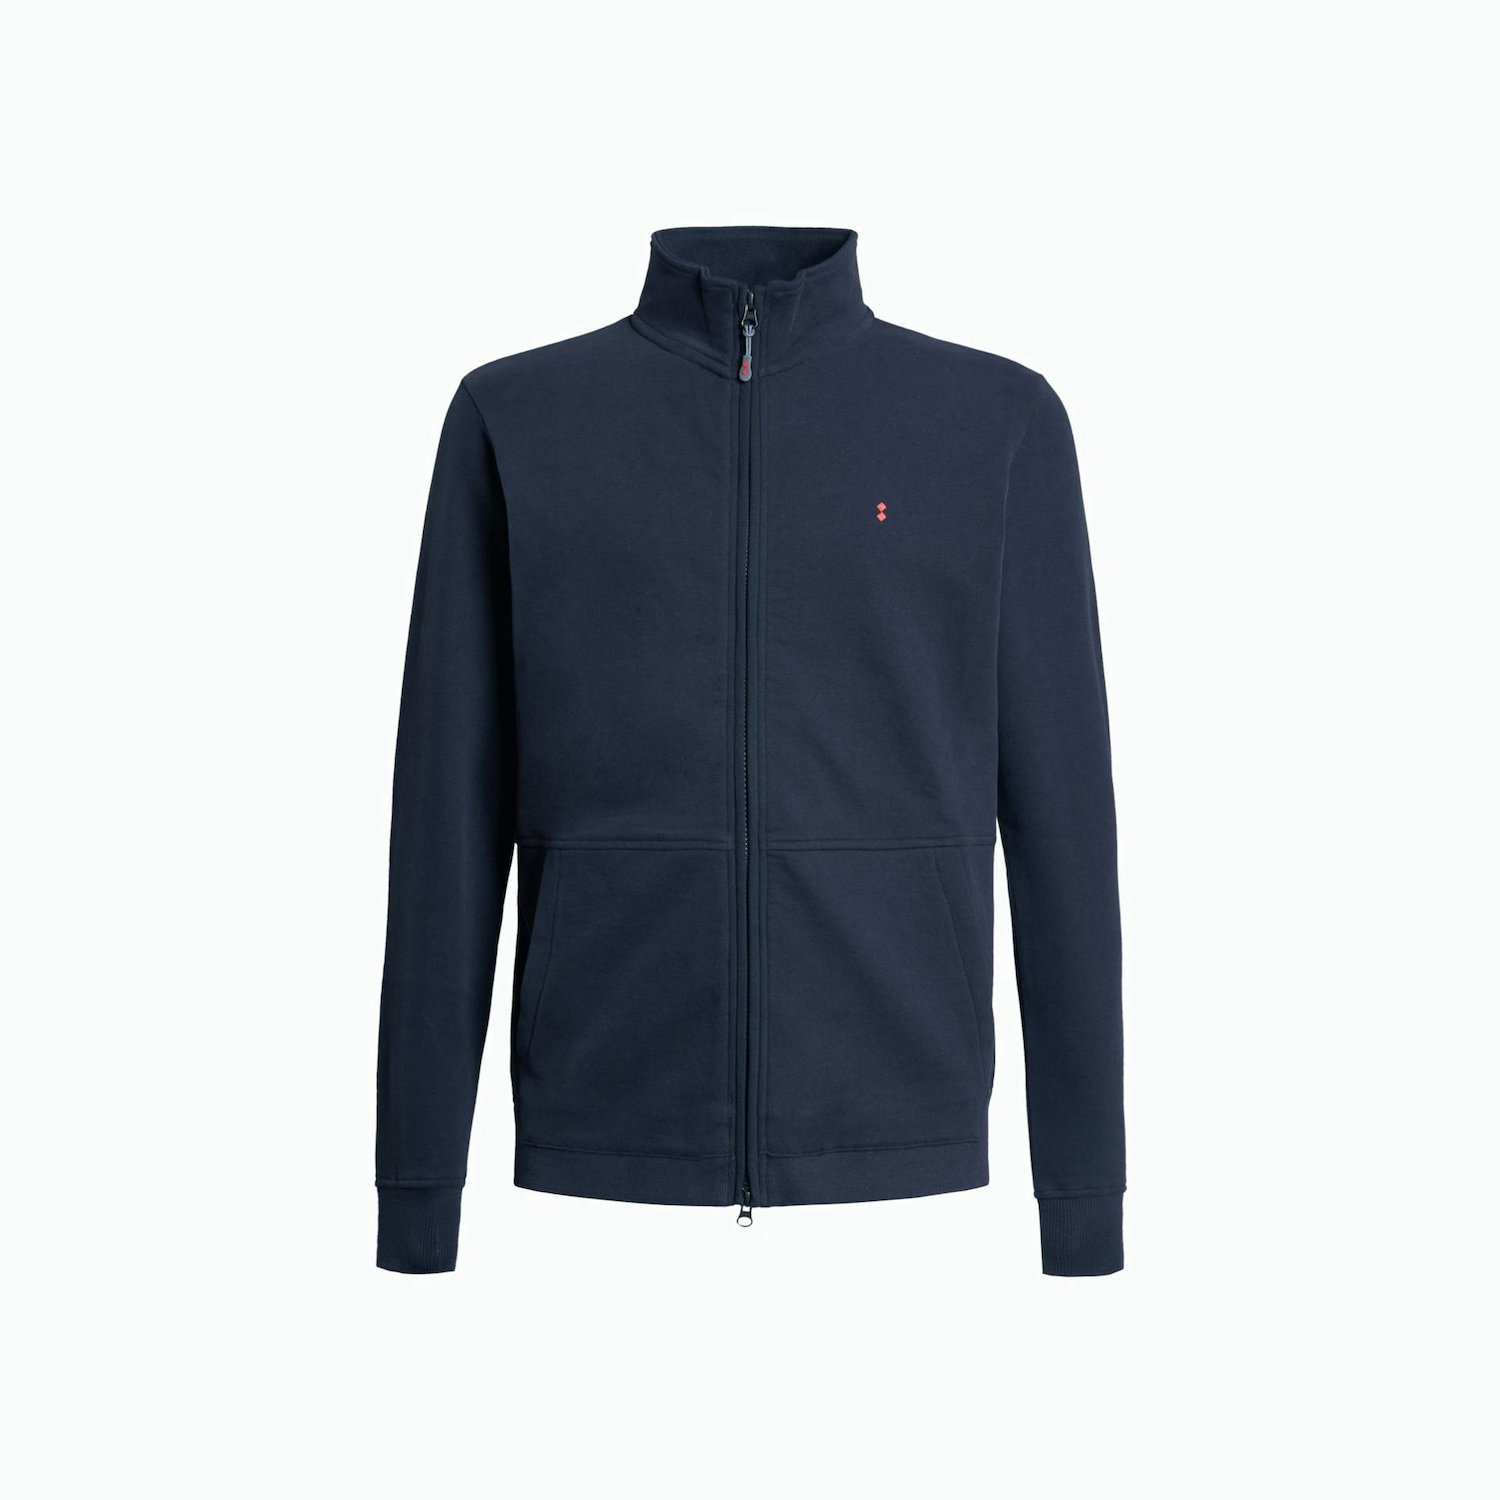 B56 Sweatshirt - Navy